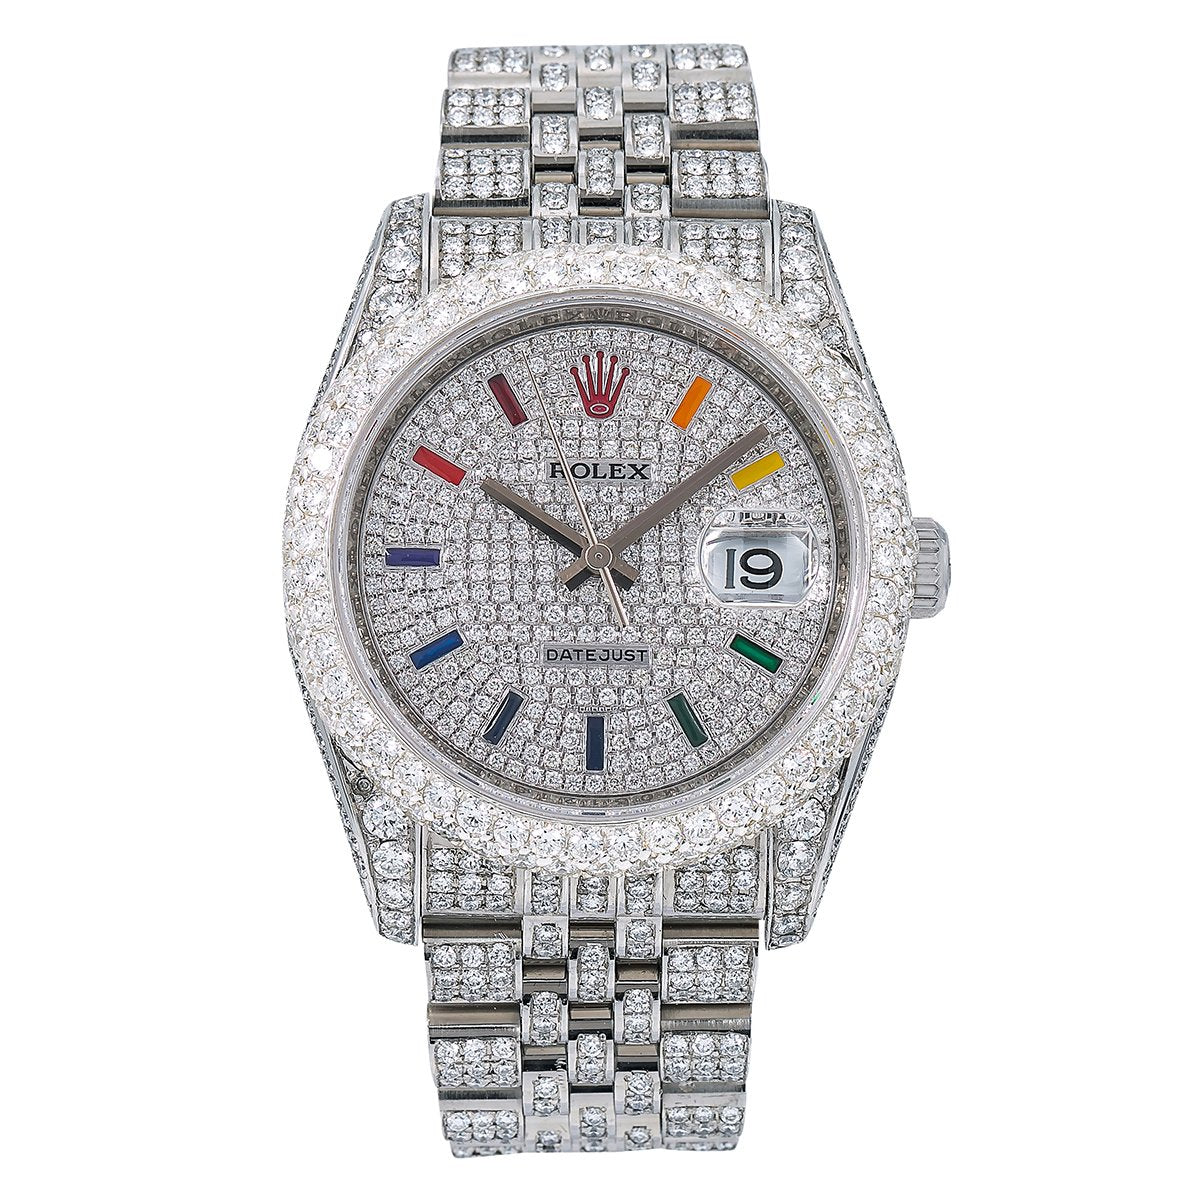 Rolex Datejust Diamond Watch, 116234 36mm, Silver Diamond Dial With Stainless Steel Bracelet